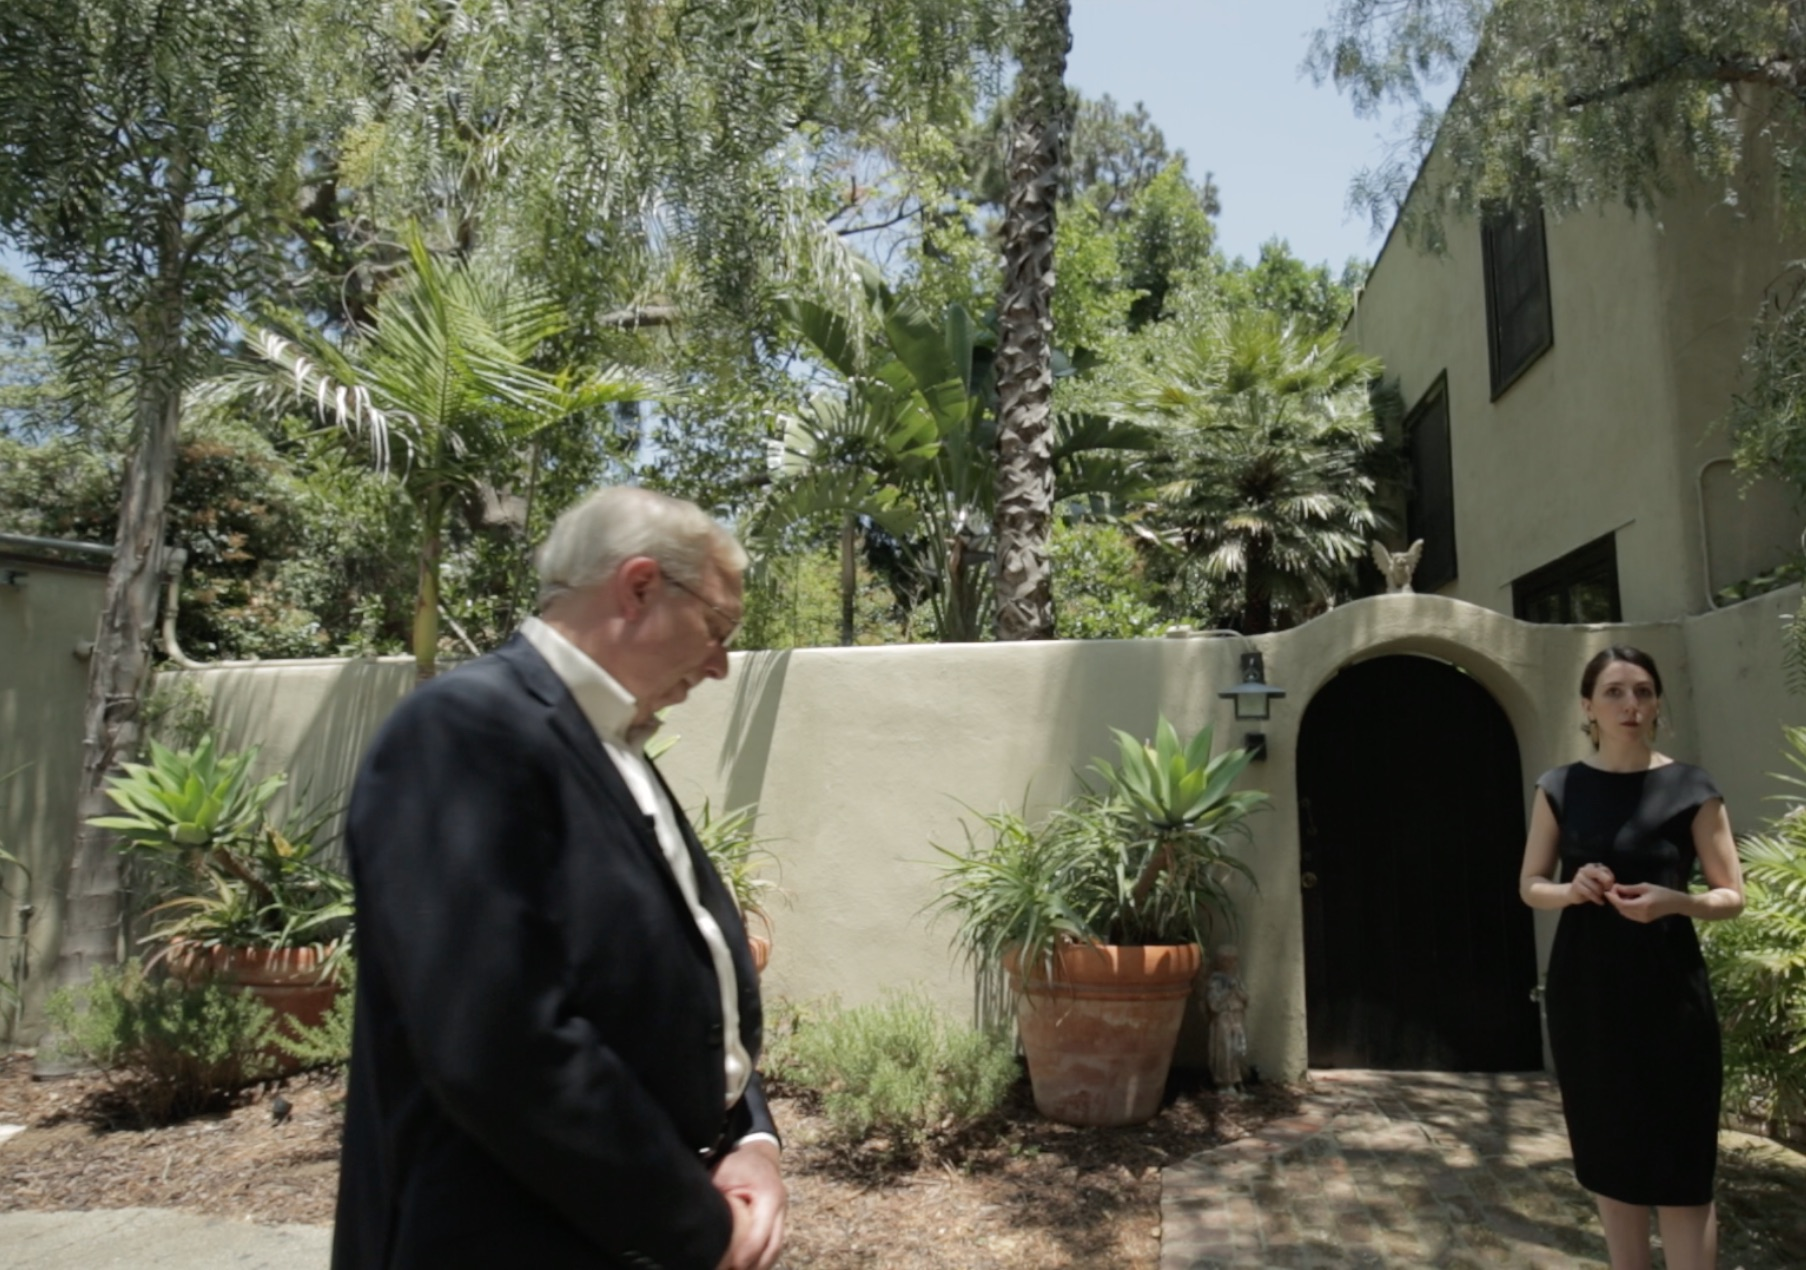 Filming at what used to be Louise's Laurel Canyon home with Philip Vorwald. Louise lived there with Eddie Sullivan, her ex-husband, and the spot was a notorious party location when the two of them lived in it.